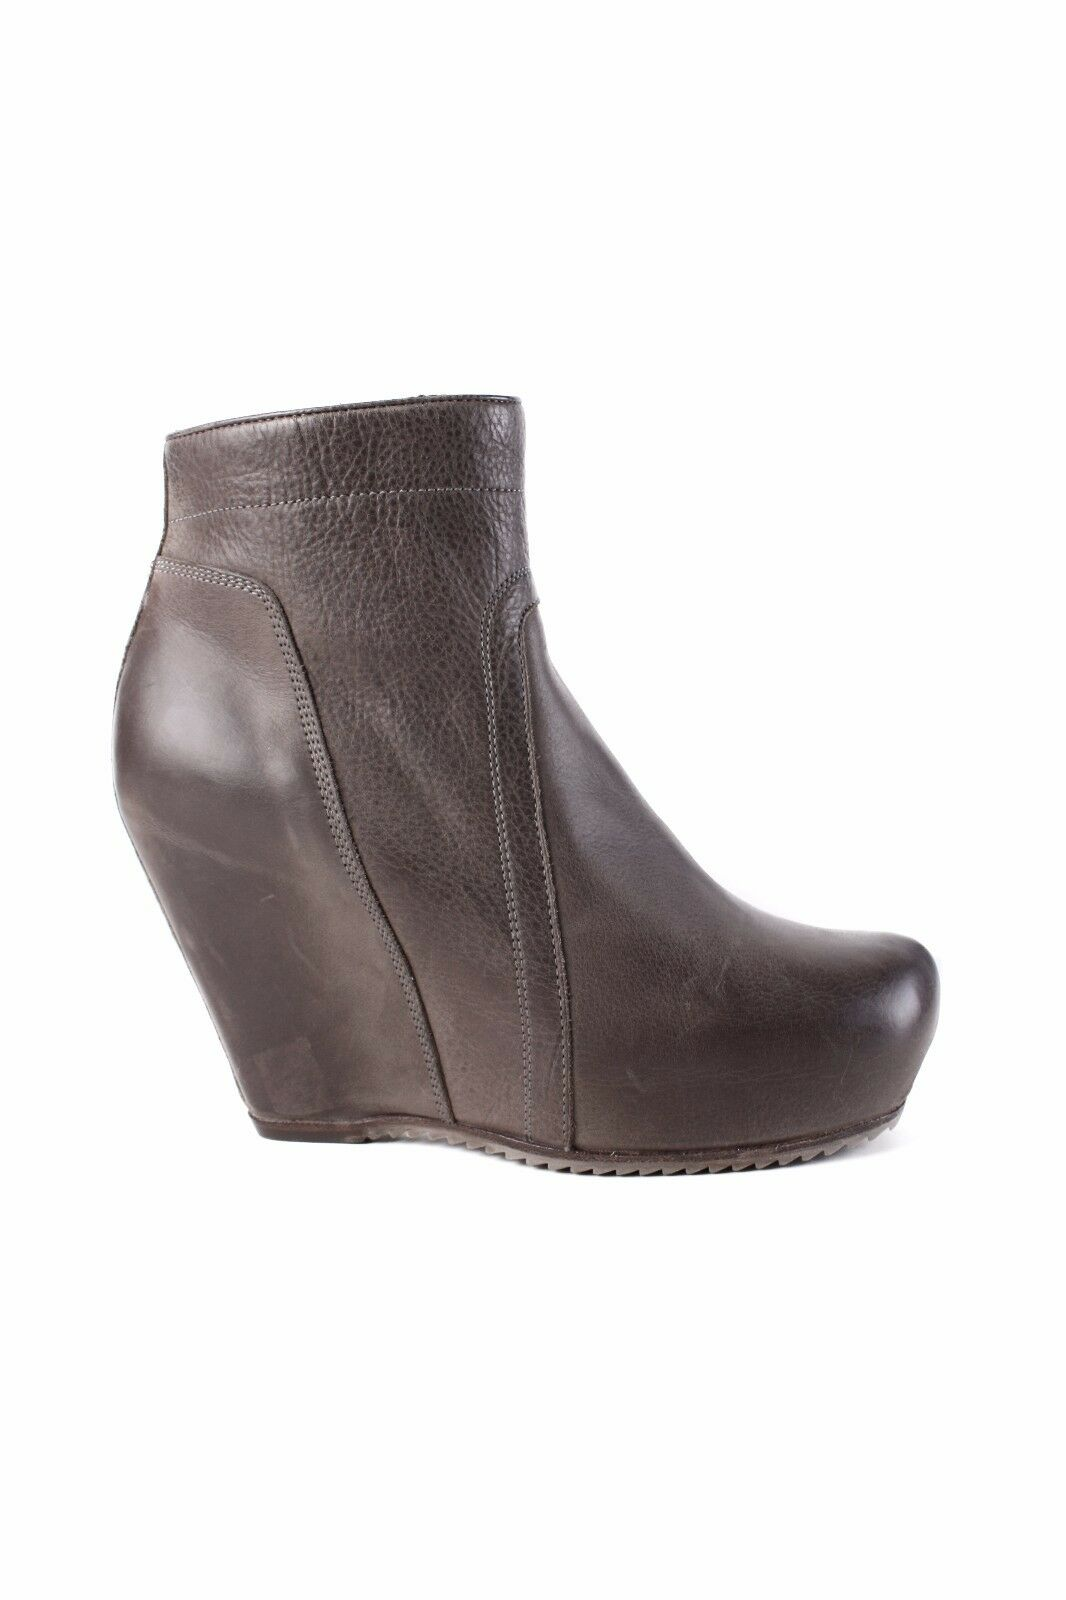 Man's/Woman's Rick Owens leather wedge boot Big clearance sale Environmentally friendly Cheap order